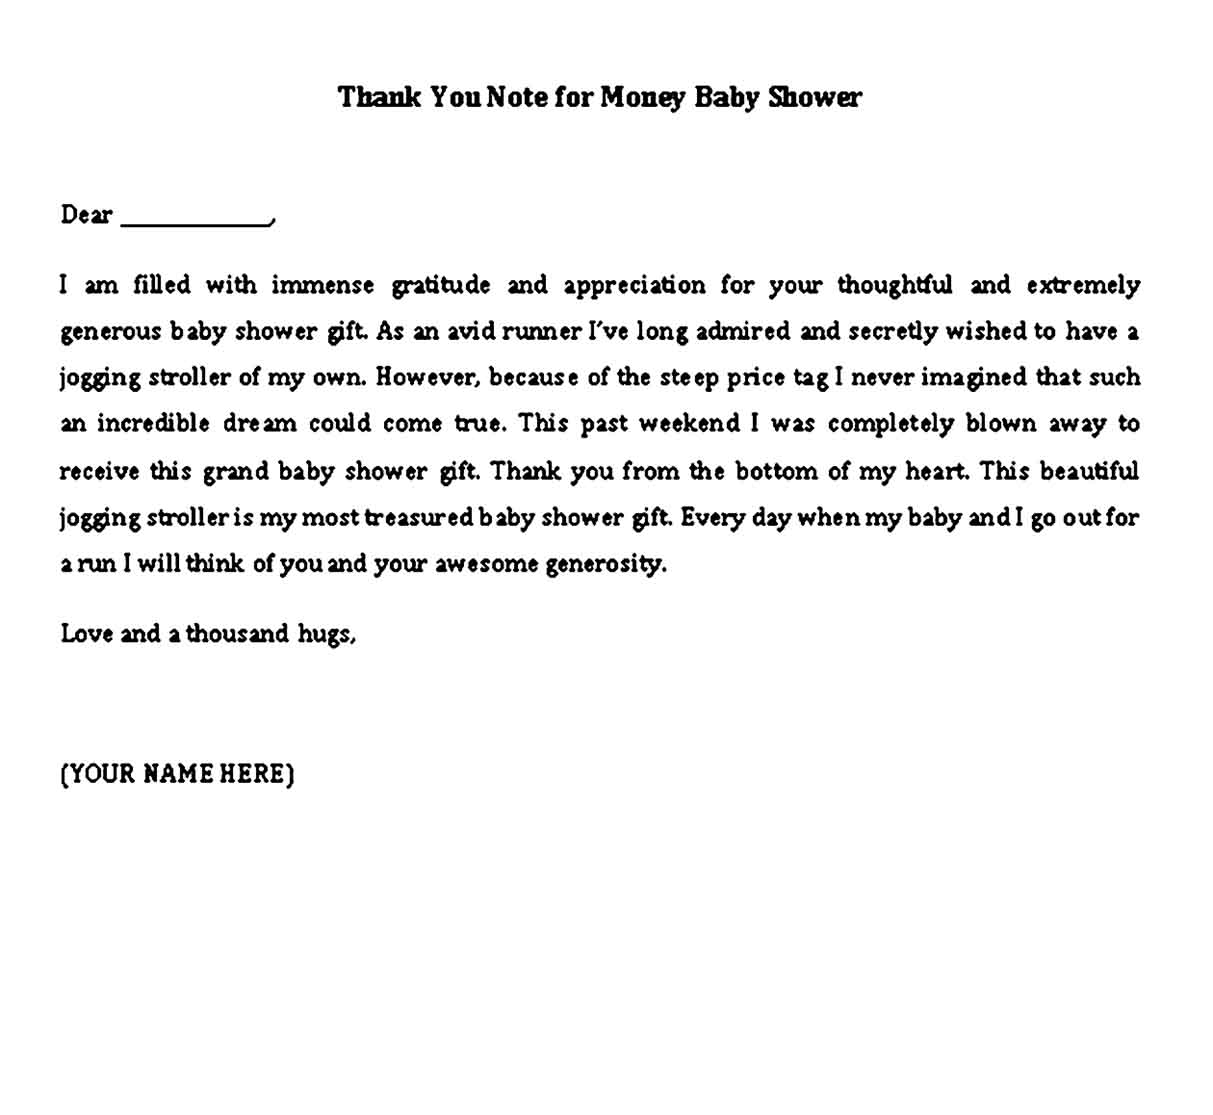 thank you note for money baby shower